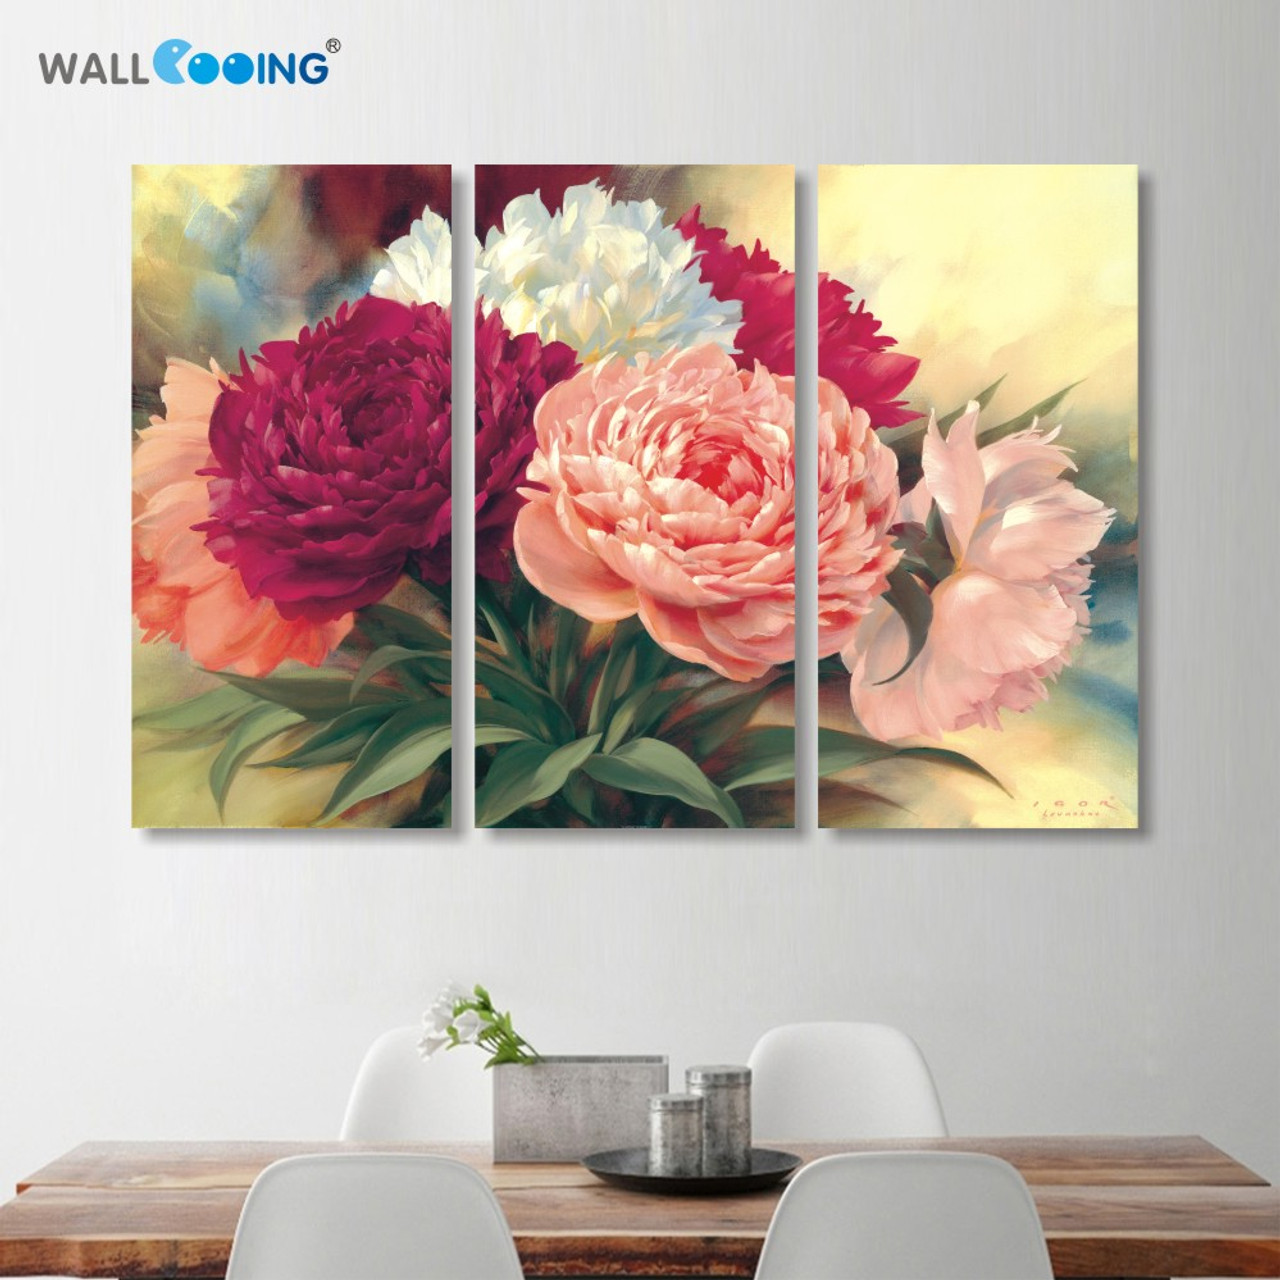 Home decoration chinese peony flowers canvas painting wall art home decoration chinese peony flowers canvas painting wall art beautiful flower picture professional high definition izmirmasajfo